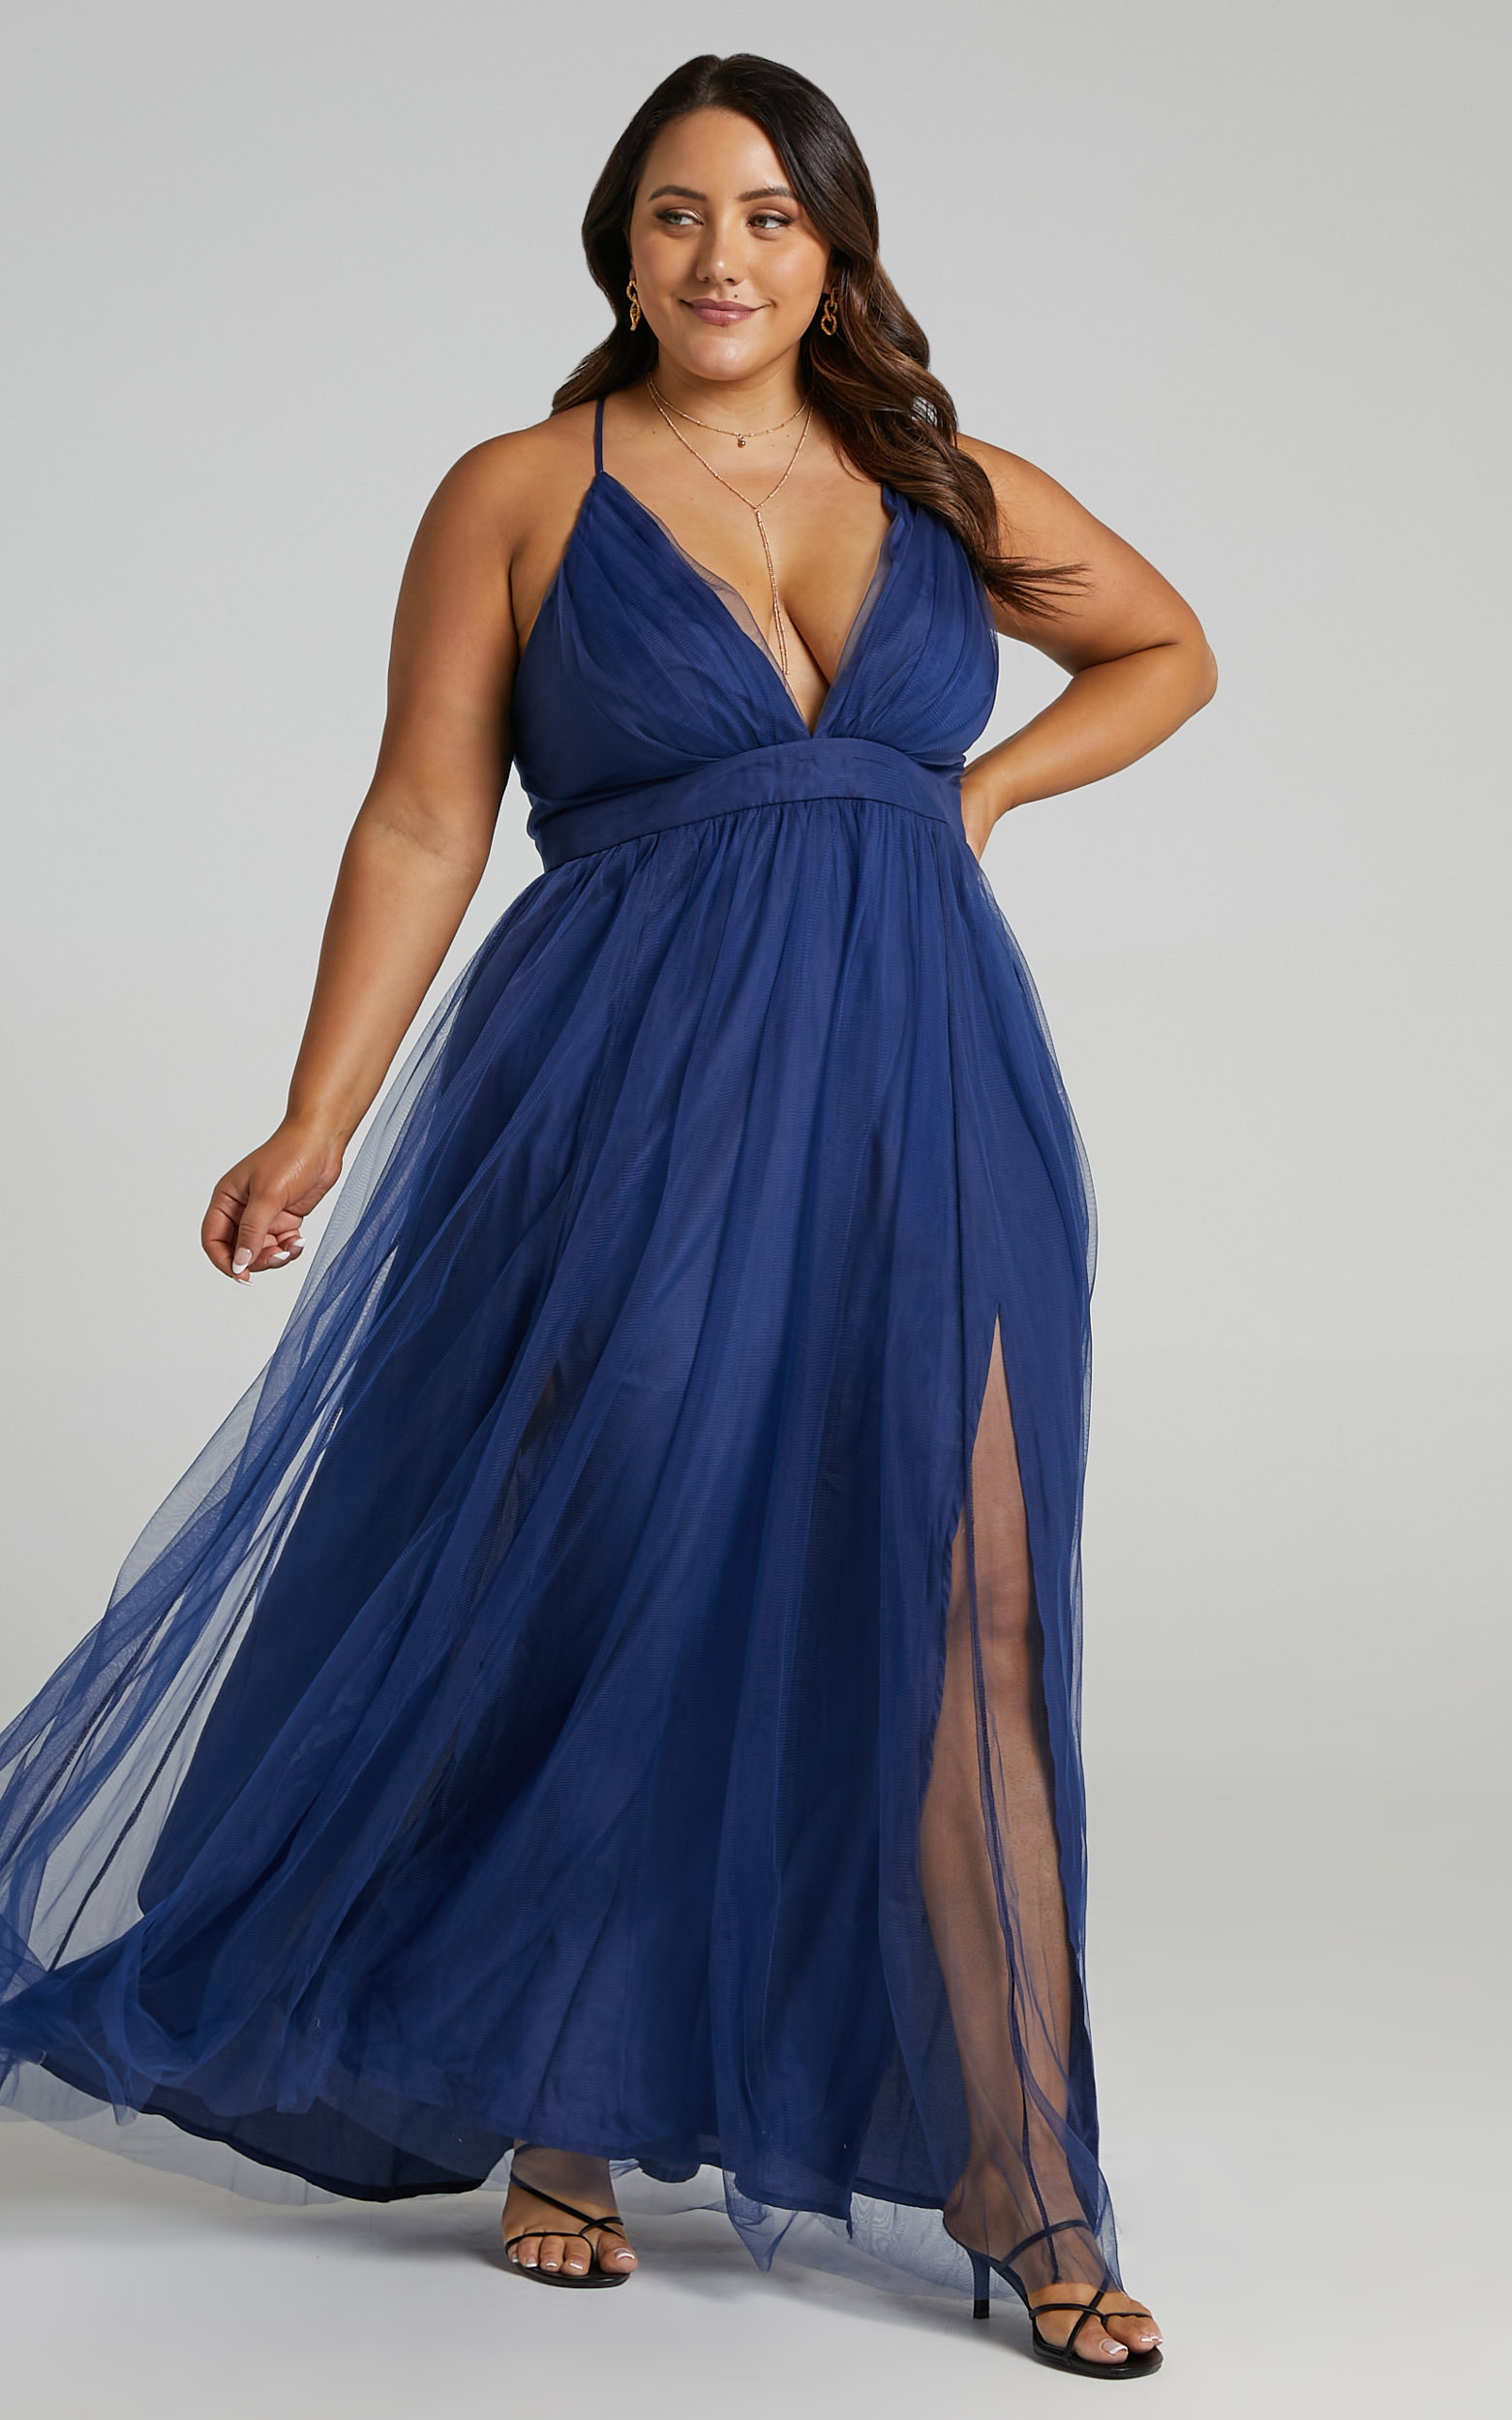 Tell Me Lies Dress in Navy Tulle - 04, NVY3, hi-res image number null